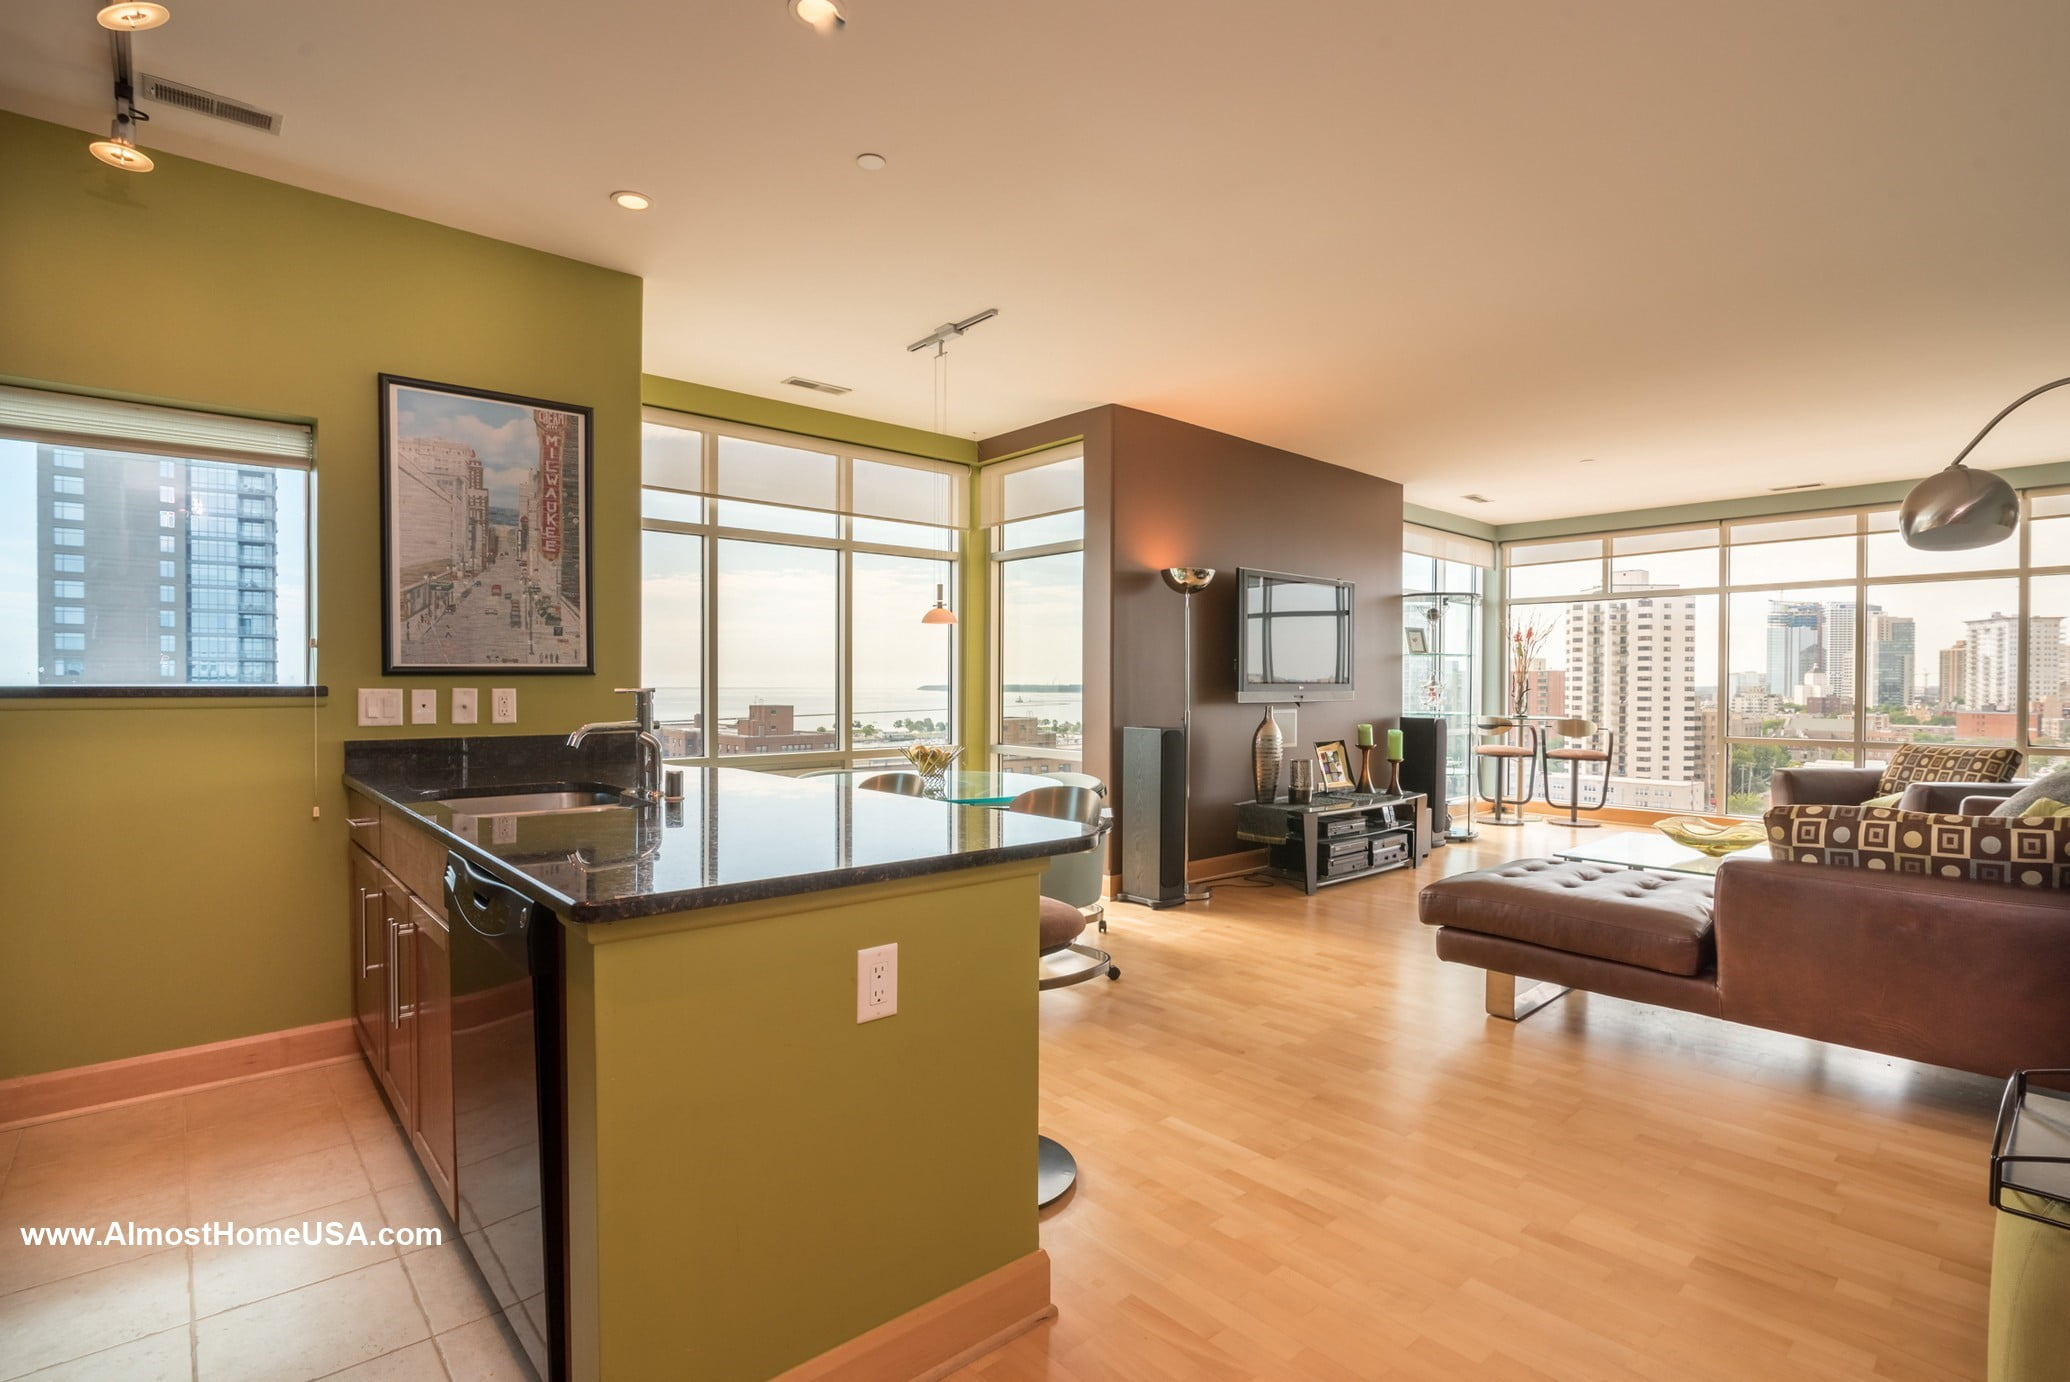 Downtown milwaukee fully furnished two bedroom penthouse apartment almost home corporate for Milwaukee 3 bedroom apartments